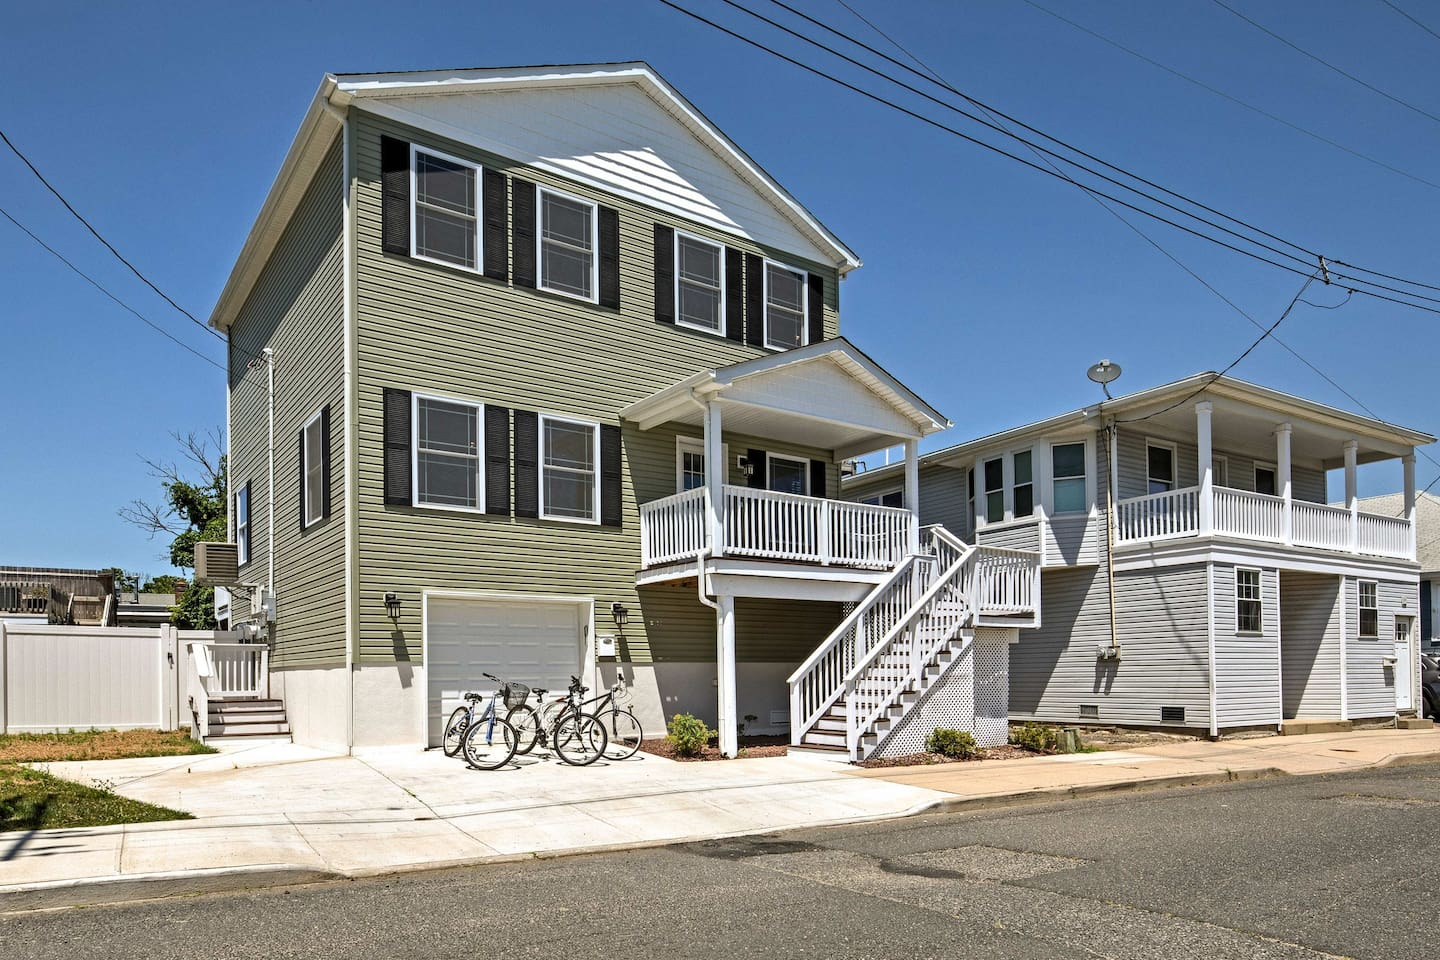 Explore the shore from this 3-bedroom, 3 bath Highlands vacation rental house.